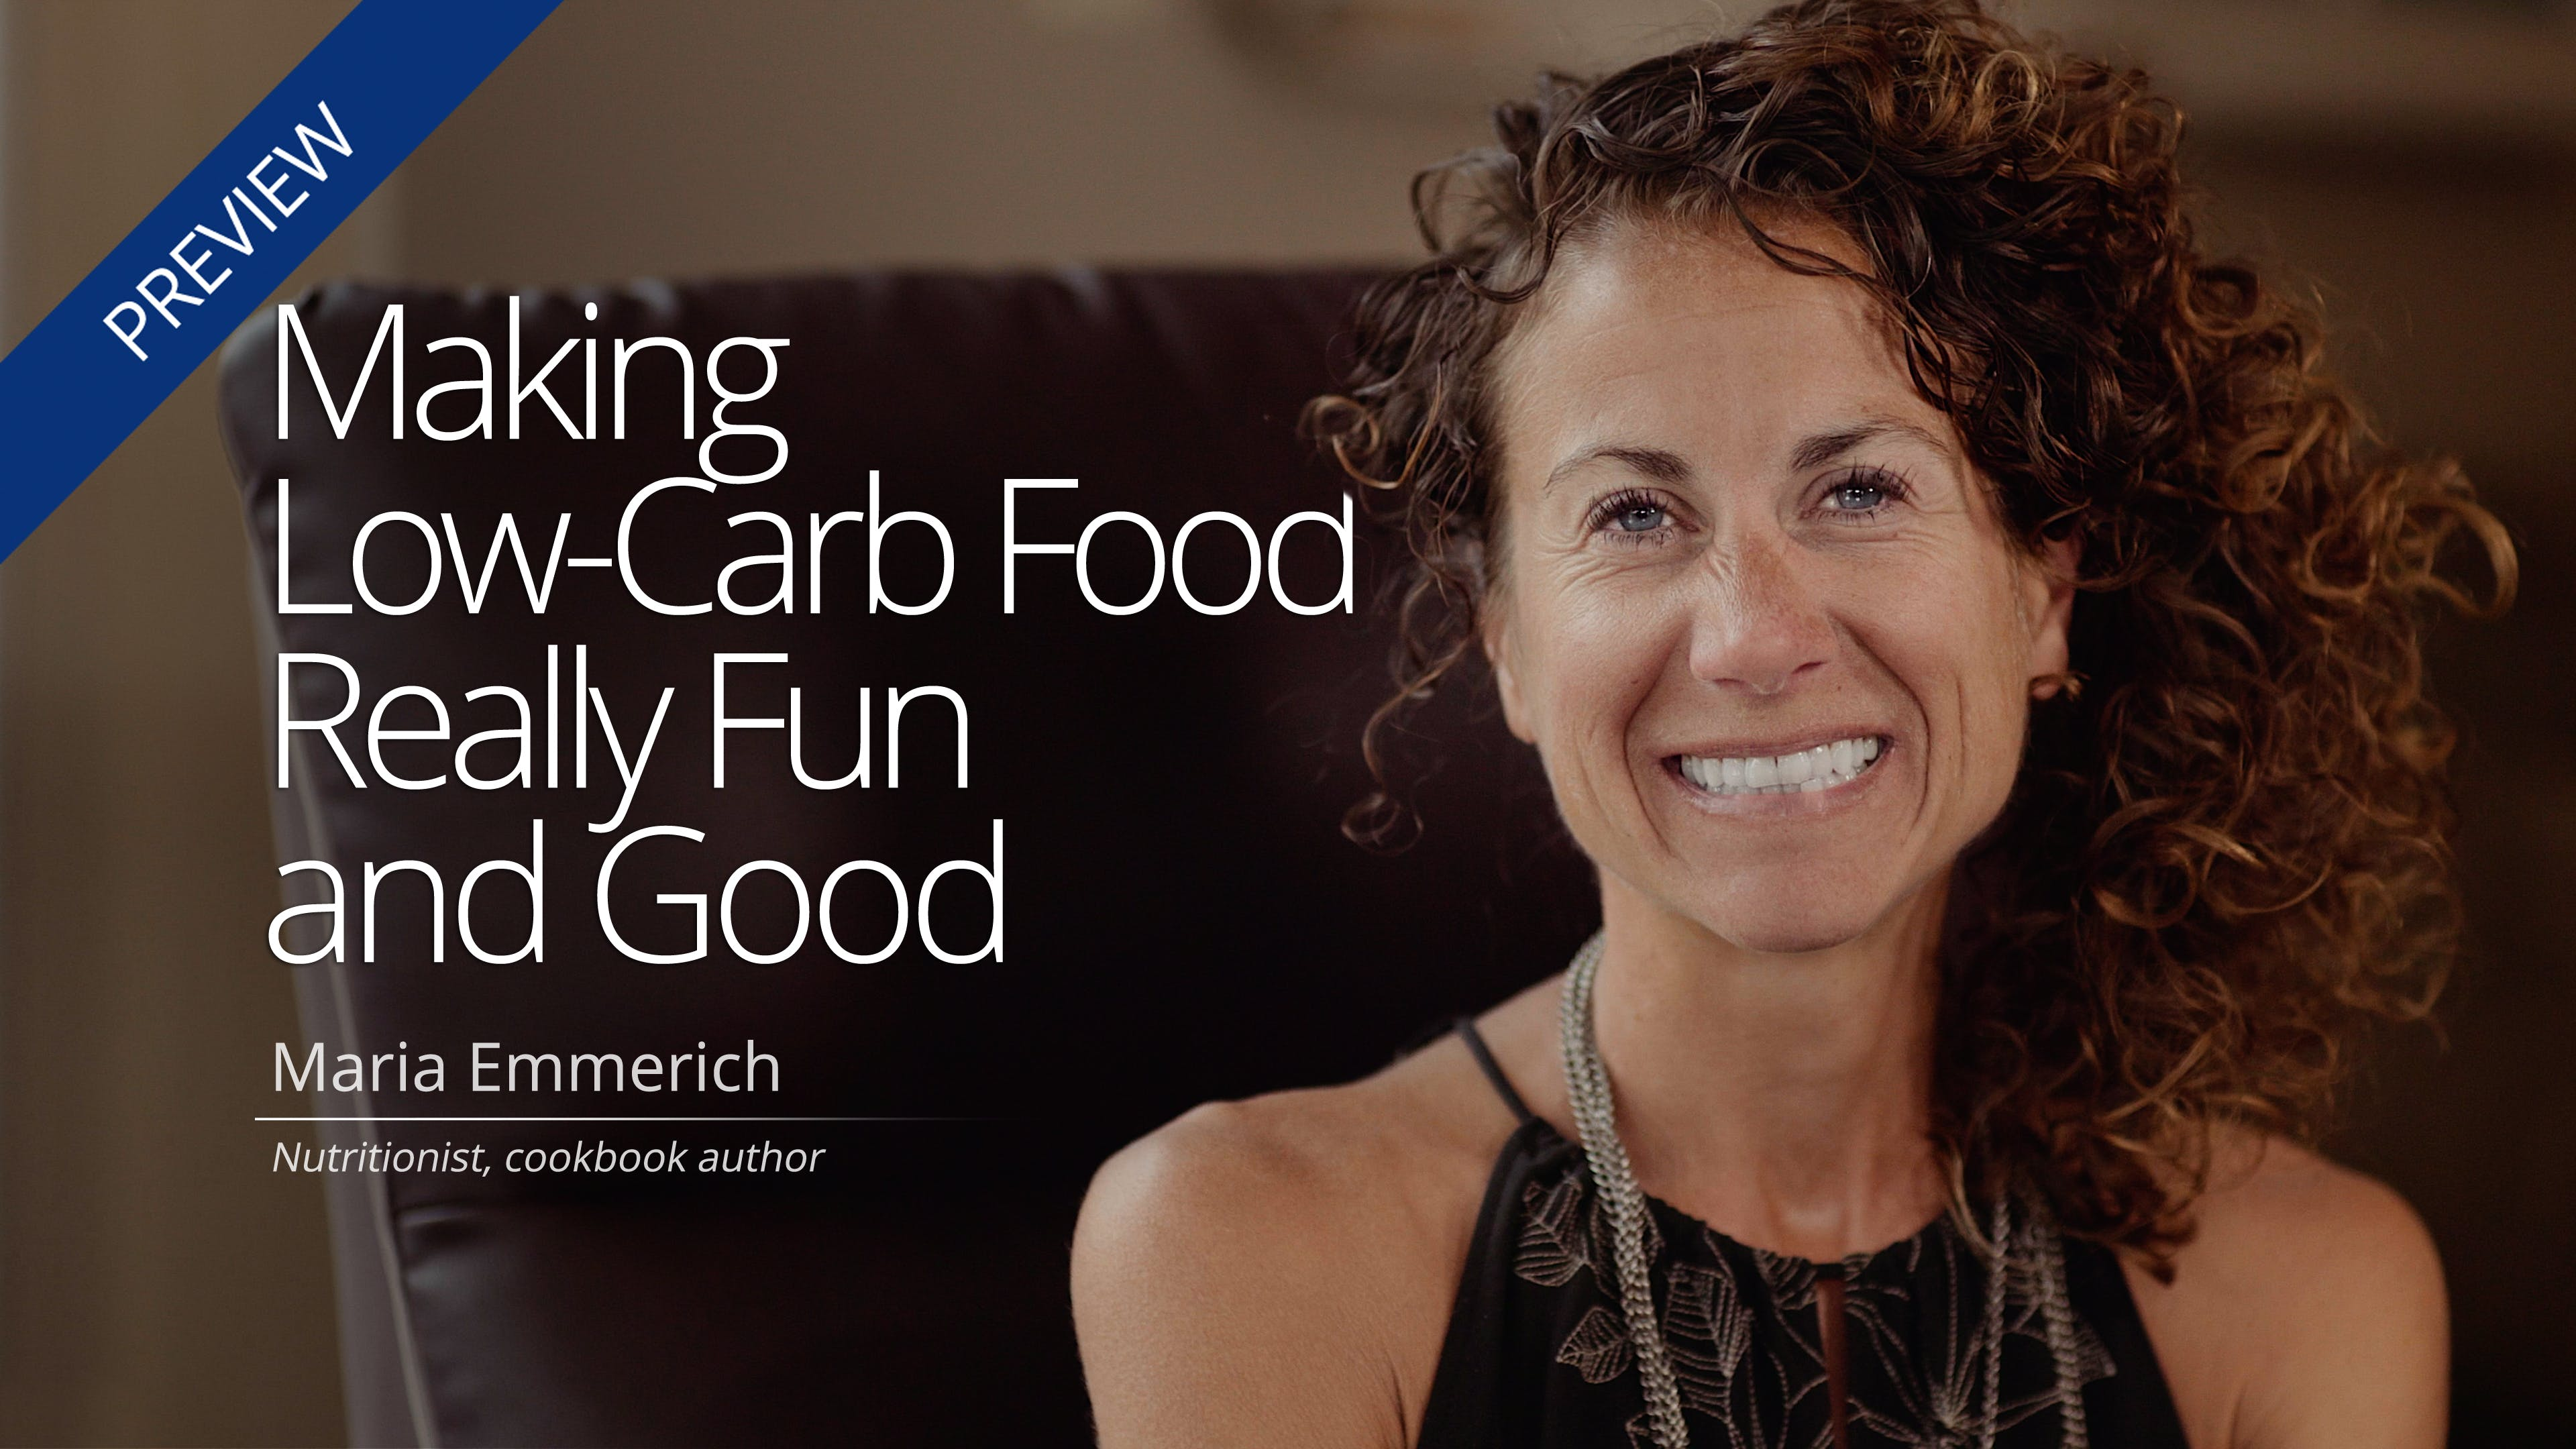 Making Low-Carb Really Fun and Good